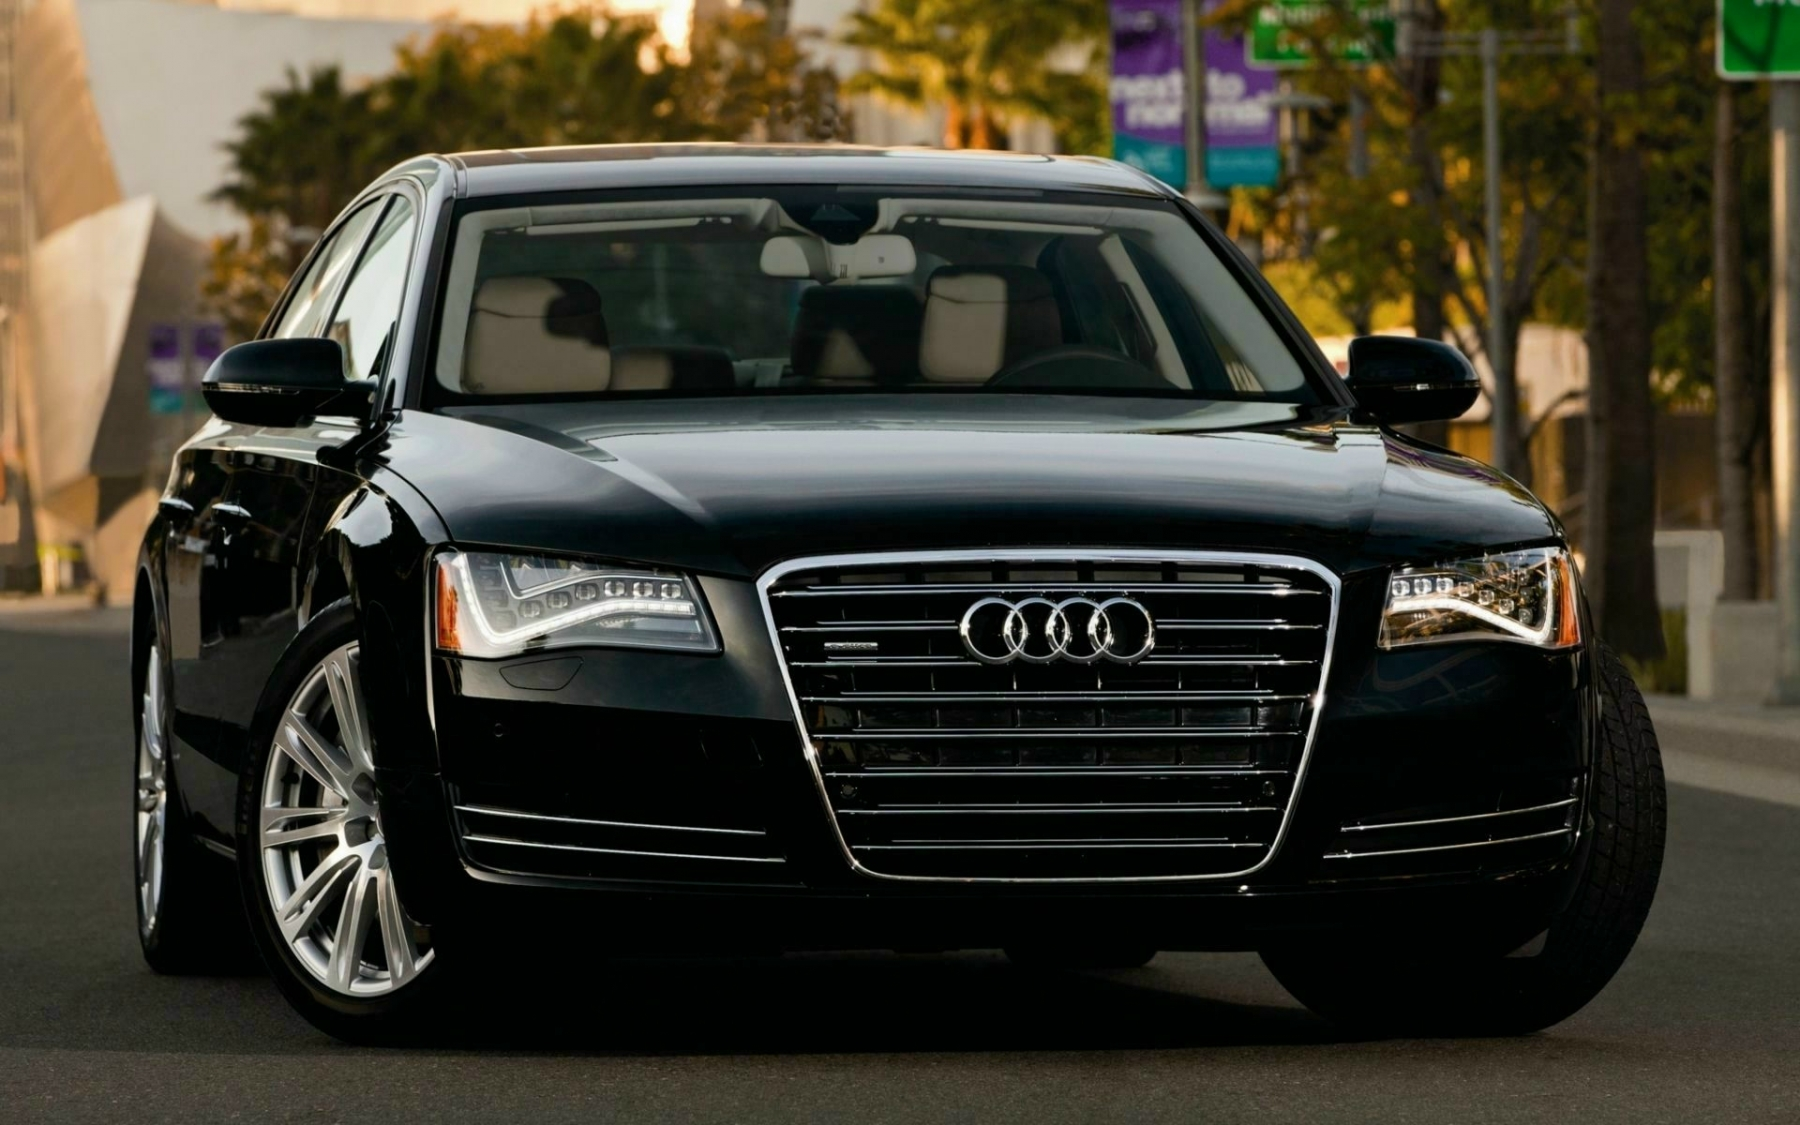 Audi A8 TFSI E HD Wallpapers Background Images Photos 1800x1125